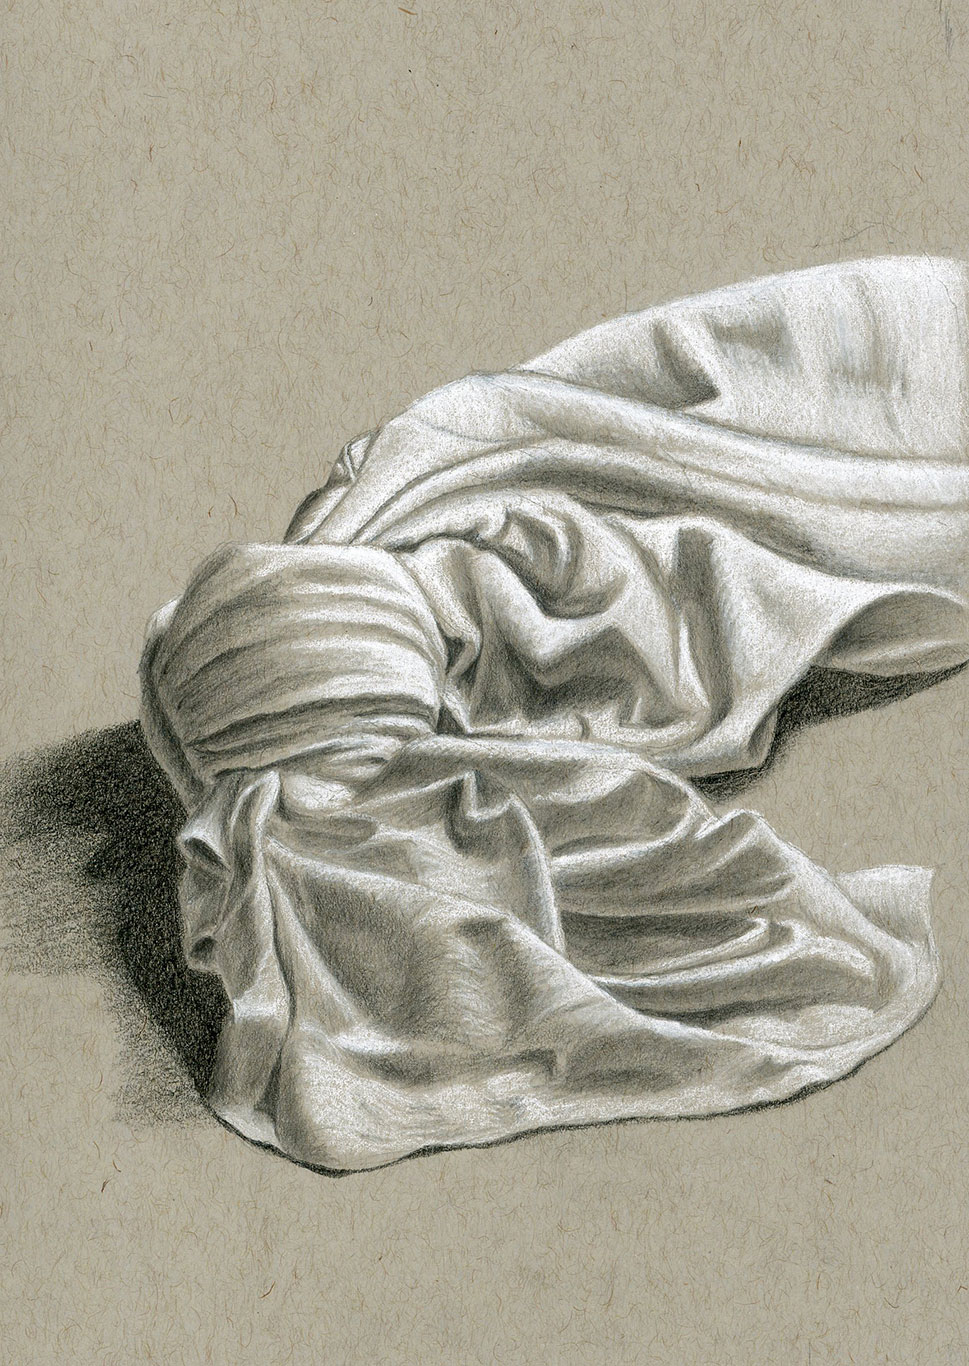 Graphite Drawing, Evelyn Lockhart, USA